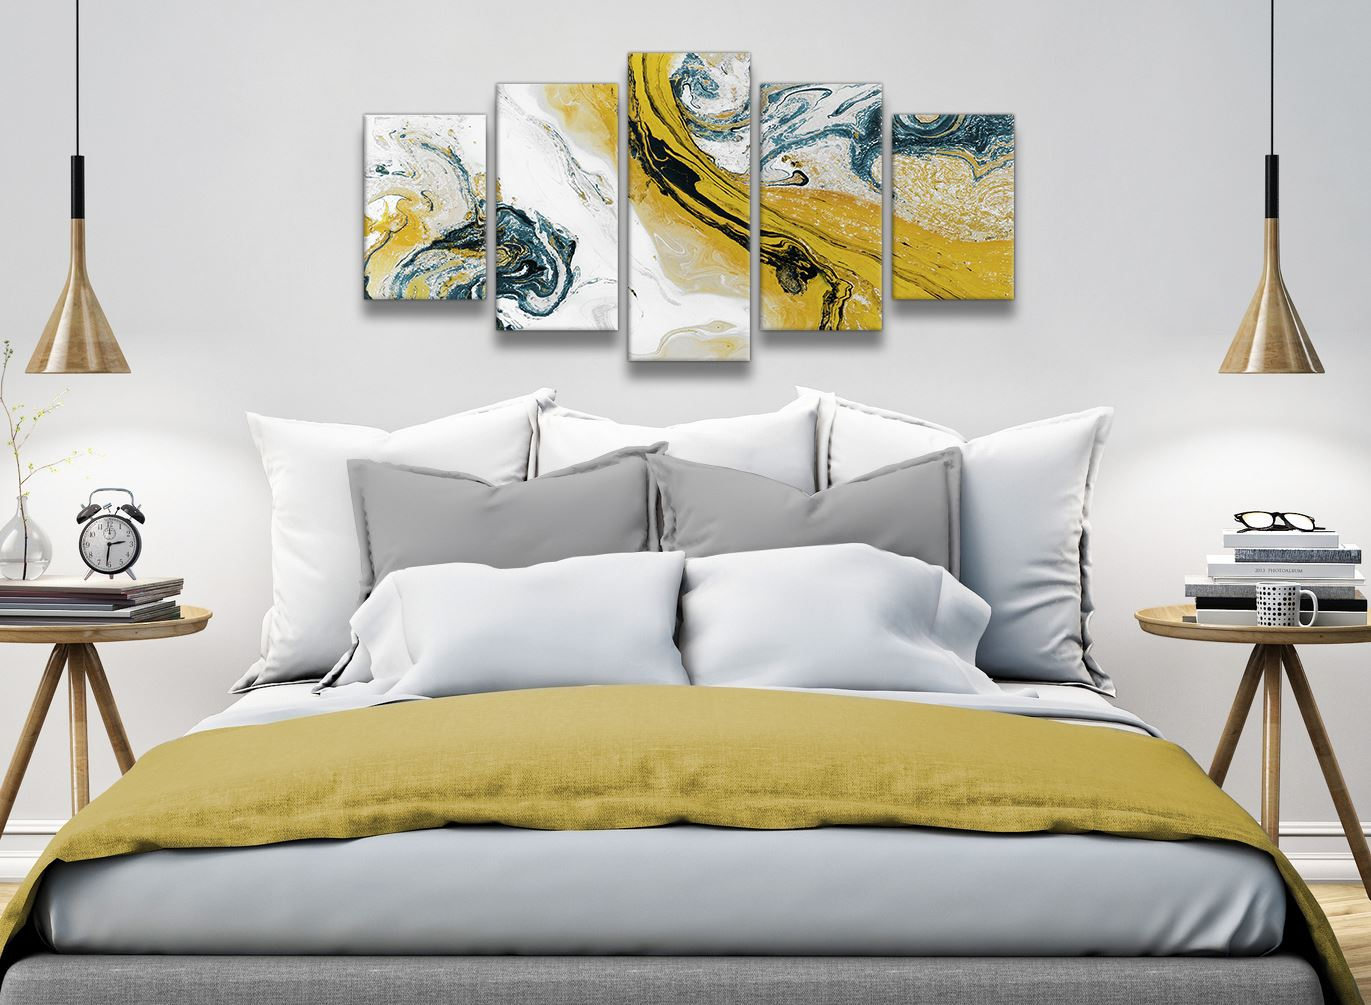 Mustard Yellow And Teal Swirl Bedroom Canvas Pictures Abstract Print Ebay